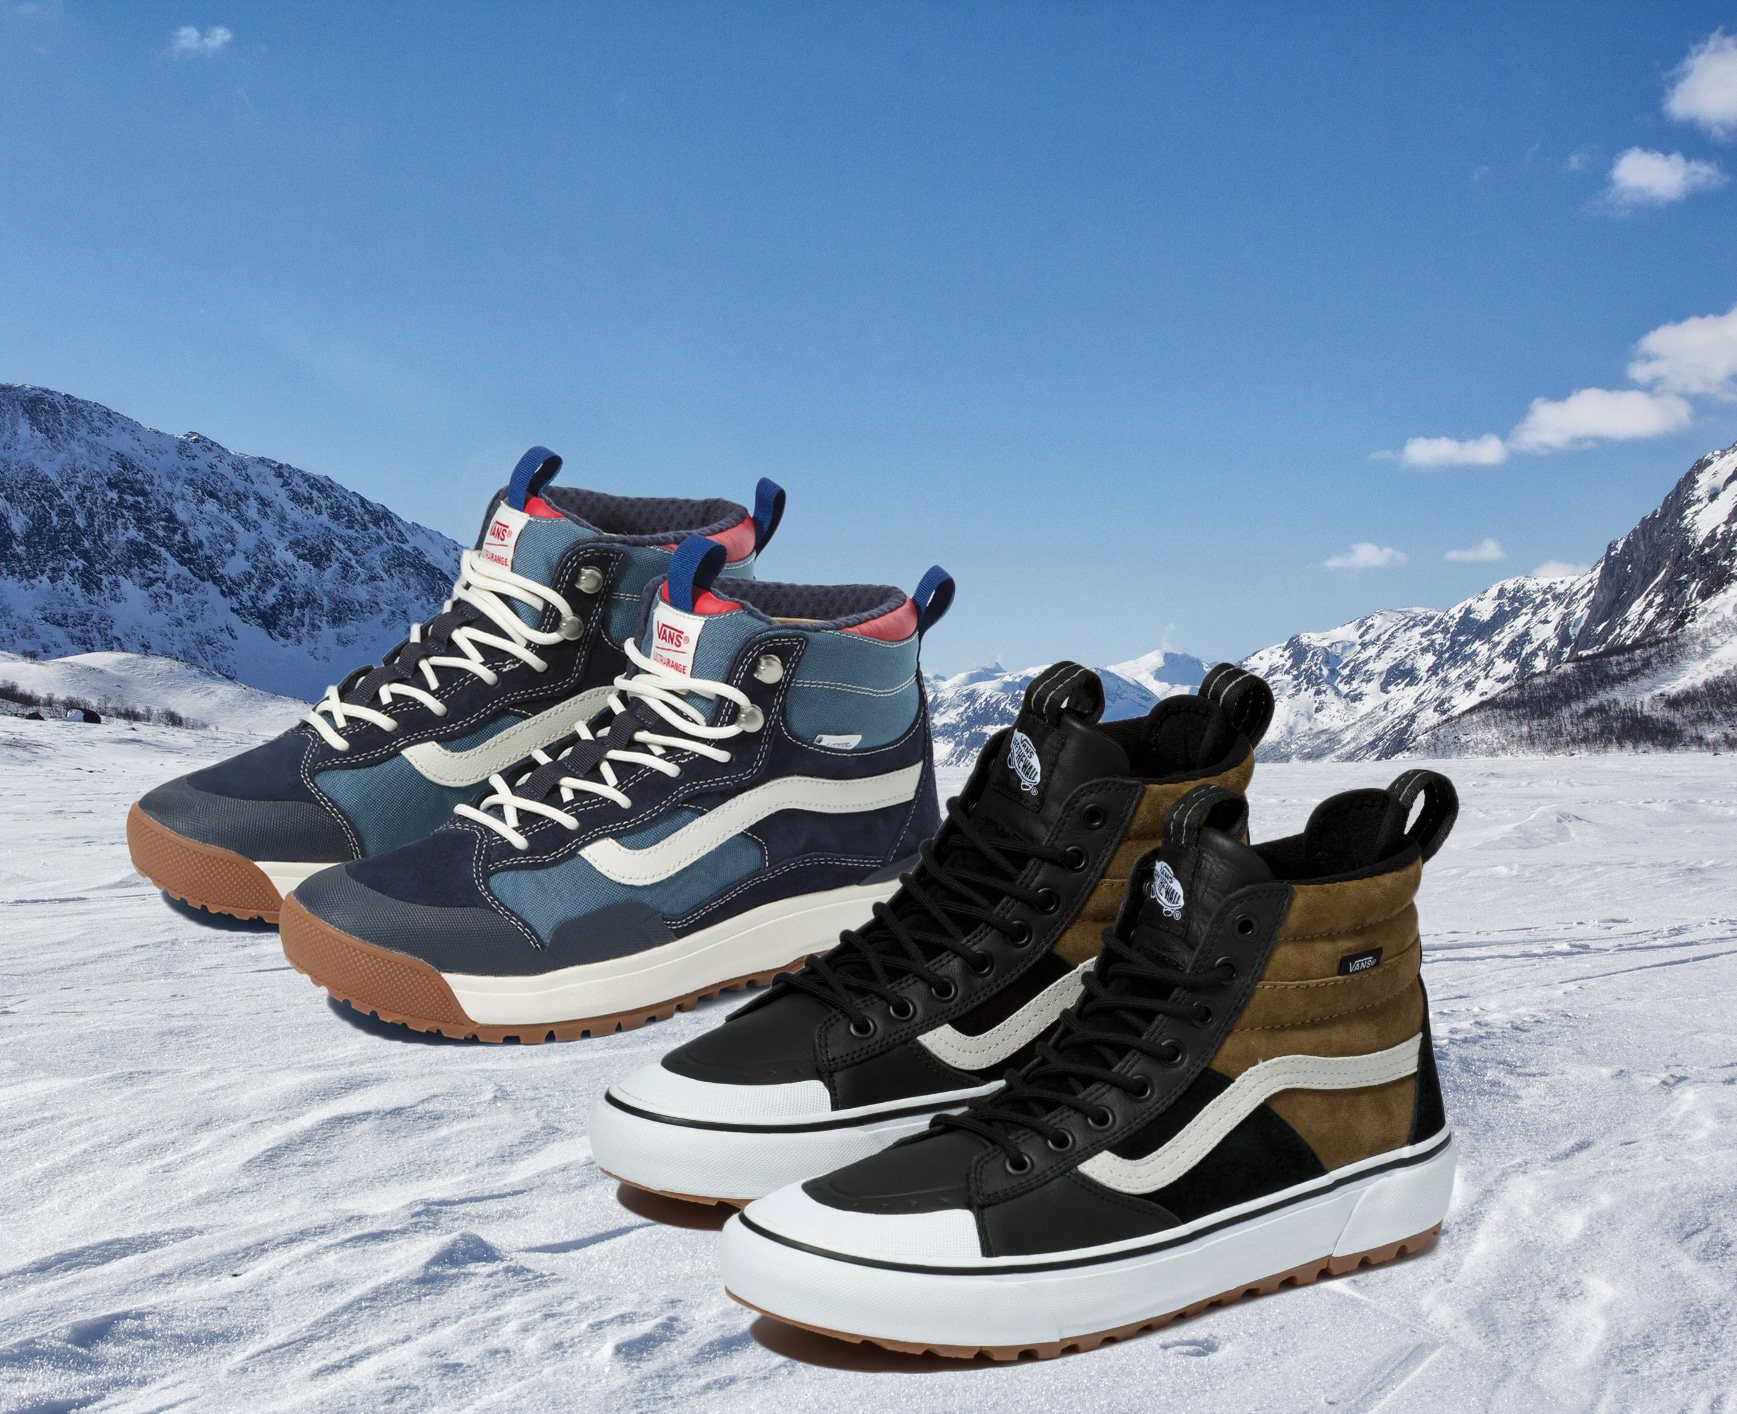 Introducing Two of Vans' Latest All-Weather MTE Collection Models